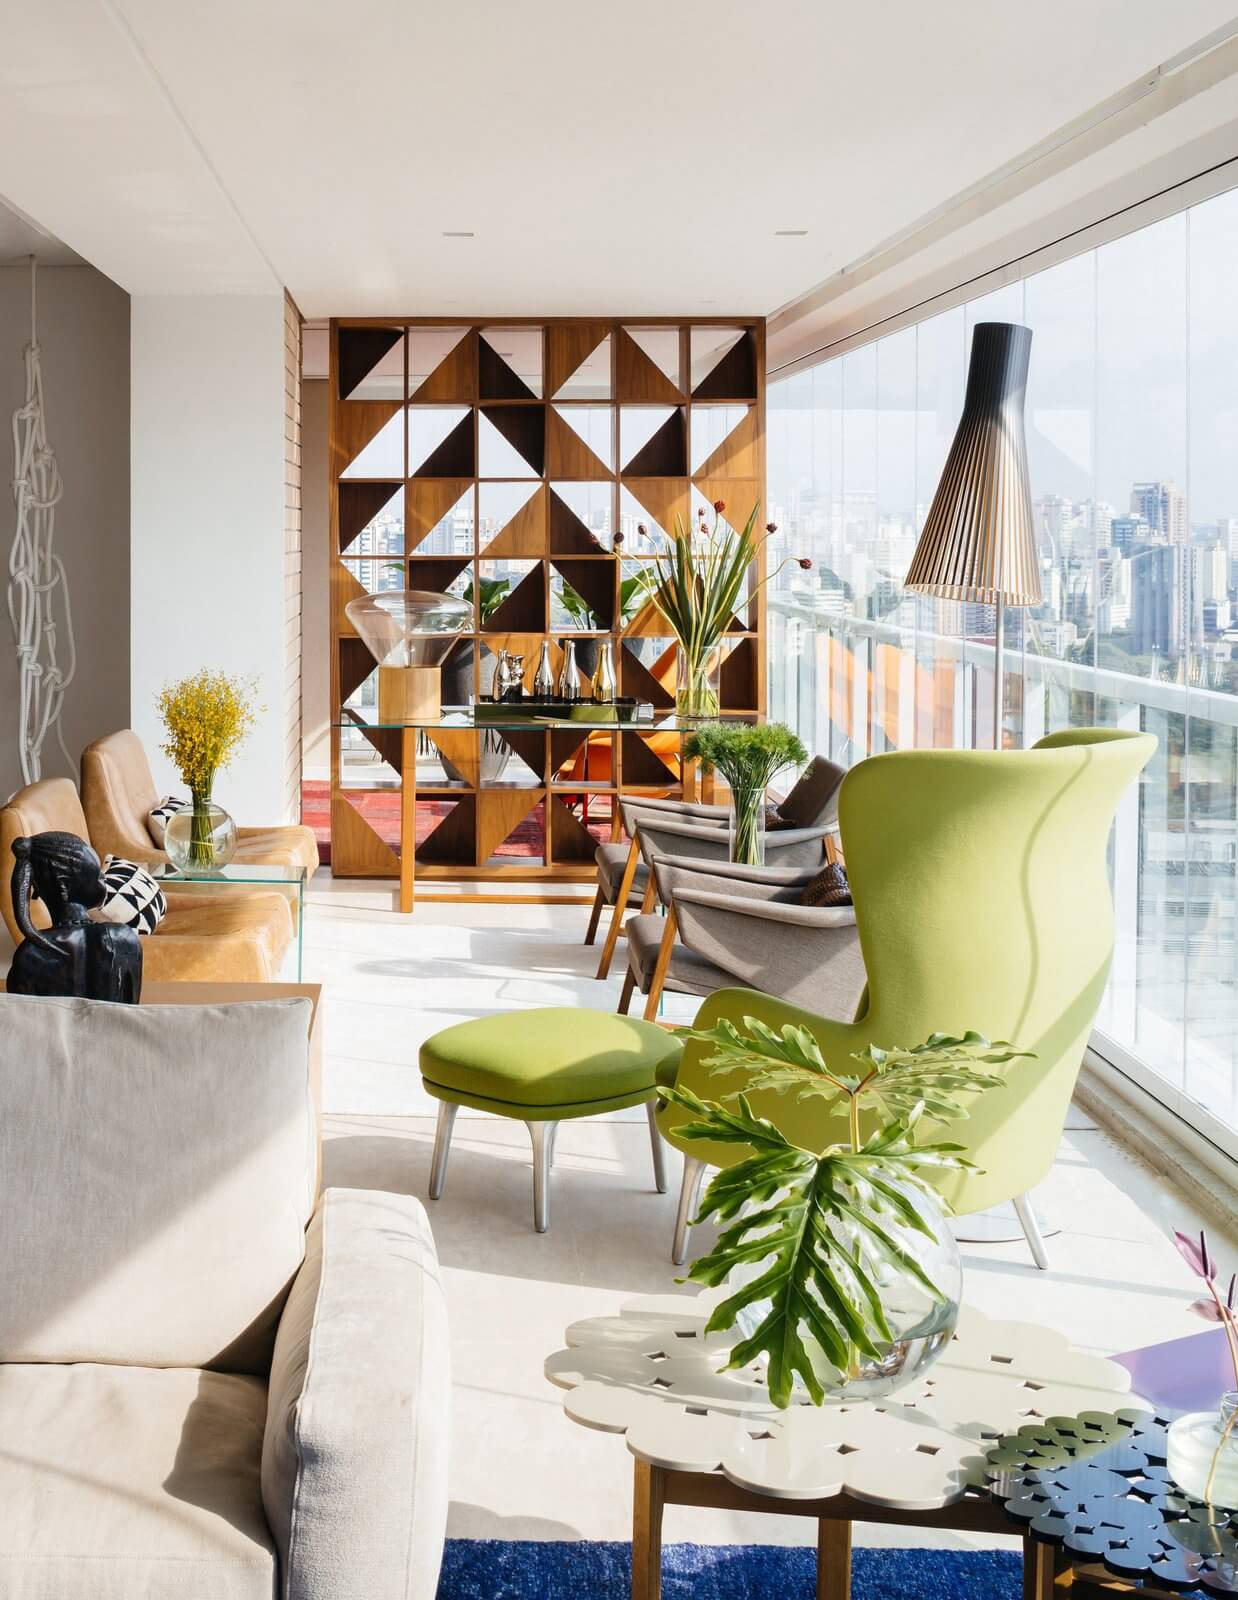 Room Partitions with Bold Geometric Patterns